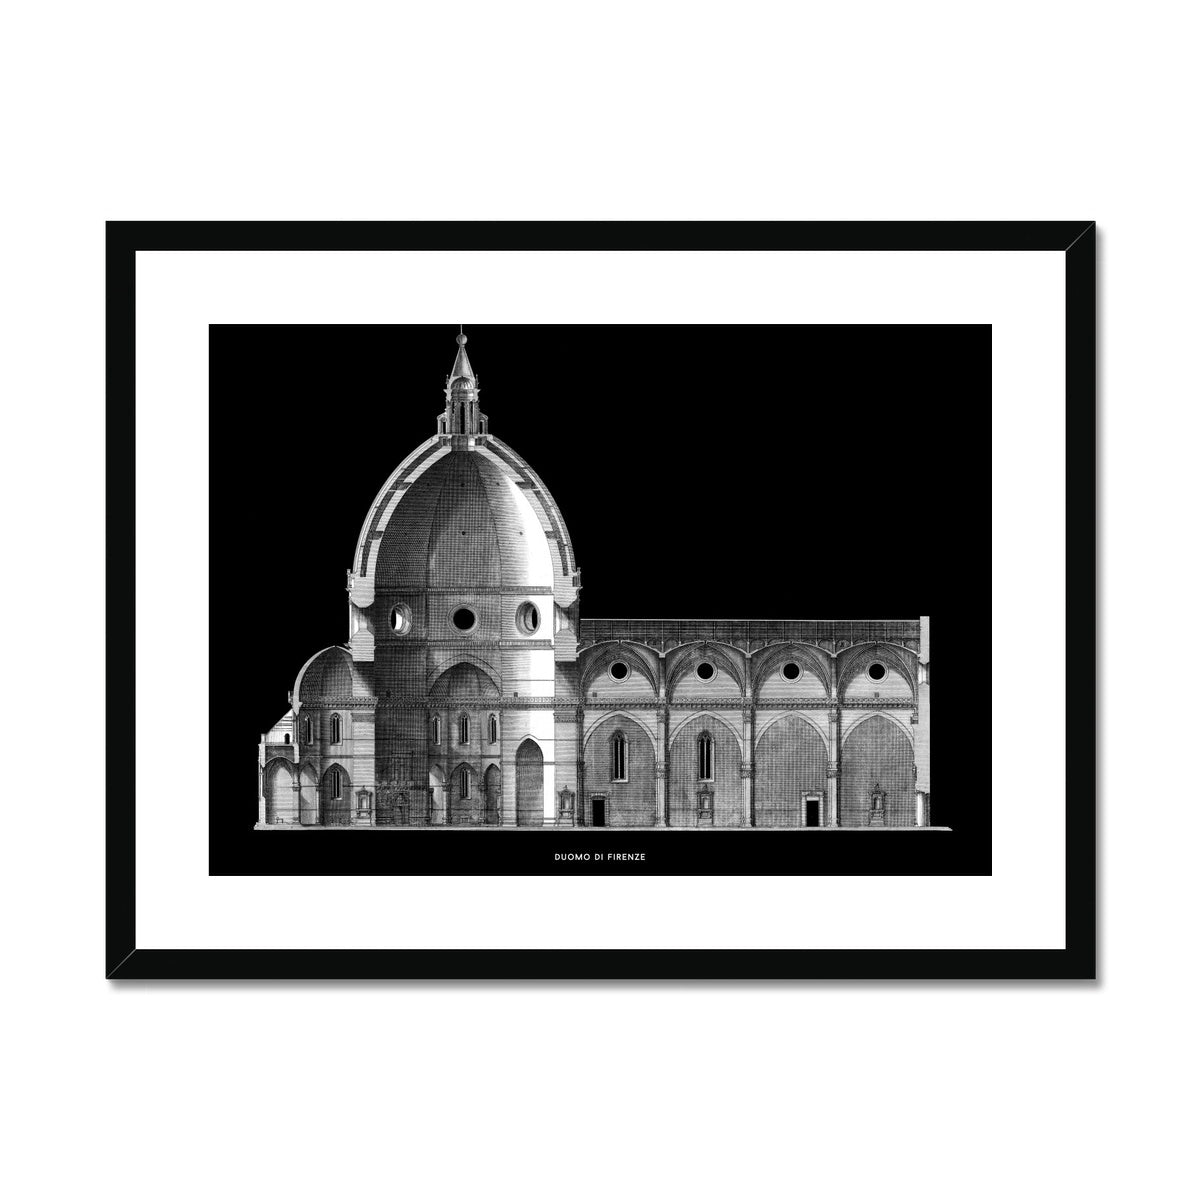 Duomo di Firenze - Transverse Cross Section - Black -  Framed & Mounted Print